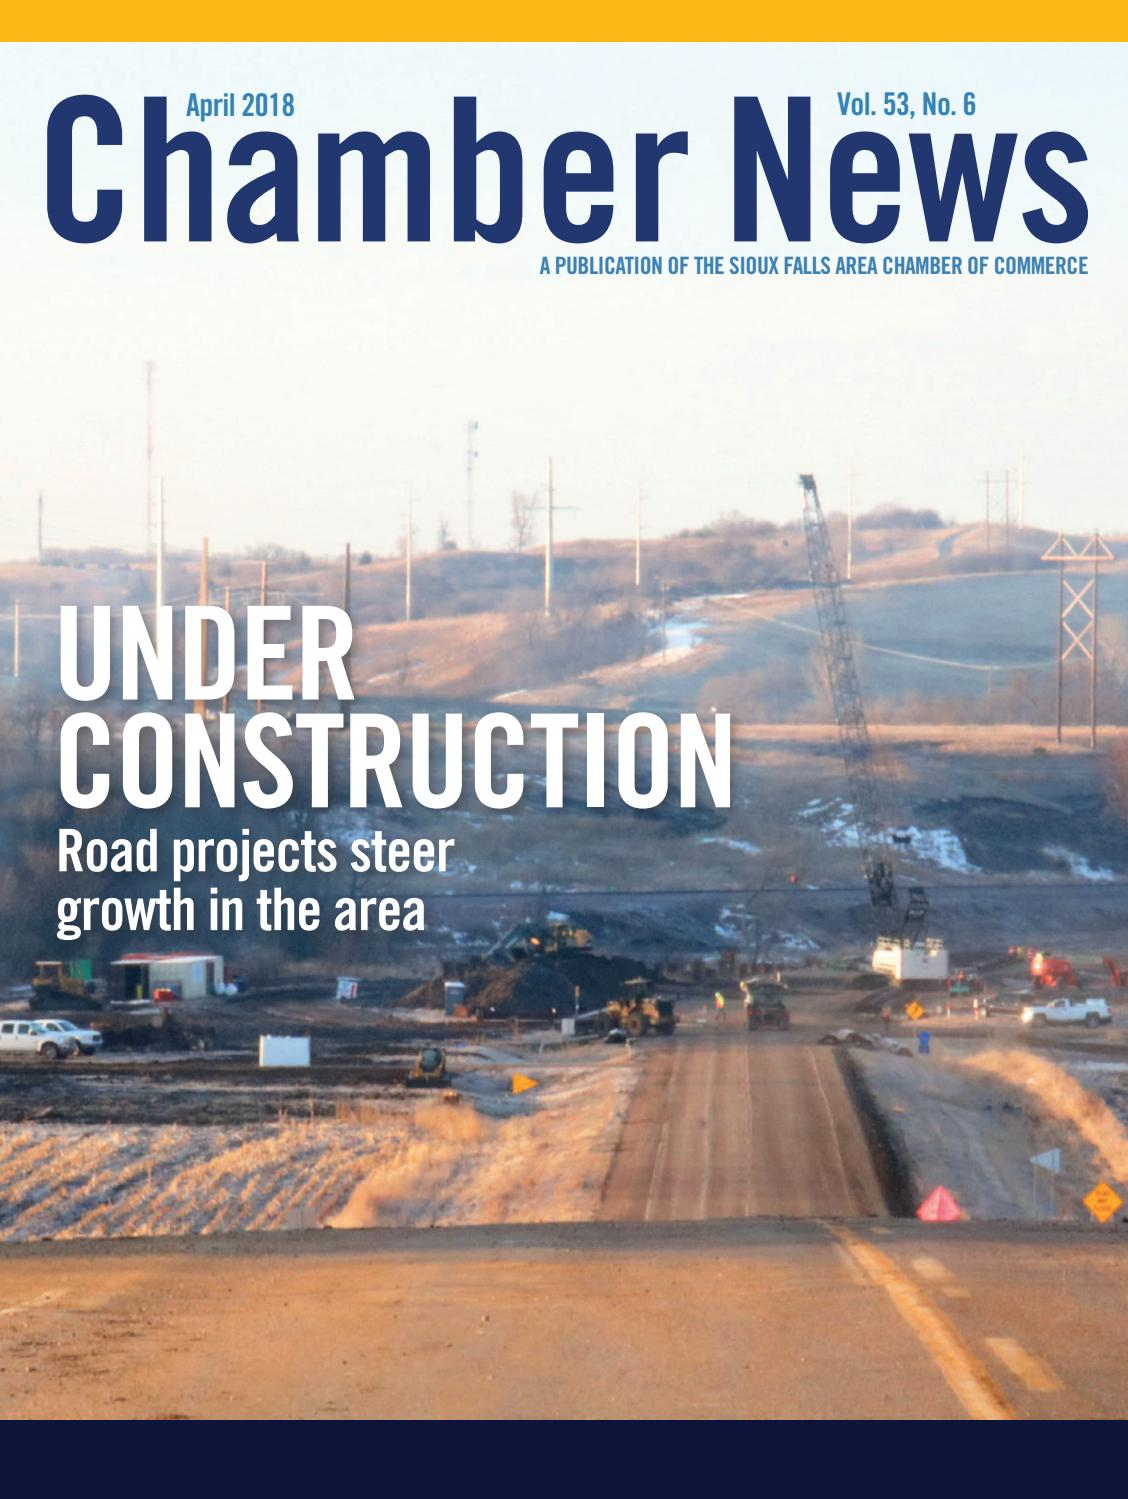 April 2018 Chamber News by Sioux Falls Area Chamber of Commerce - issuu